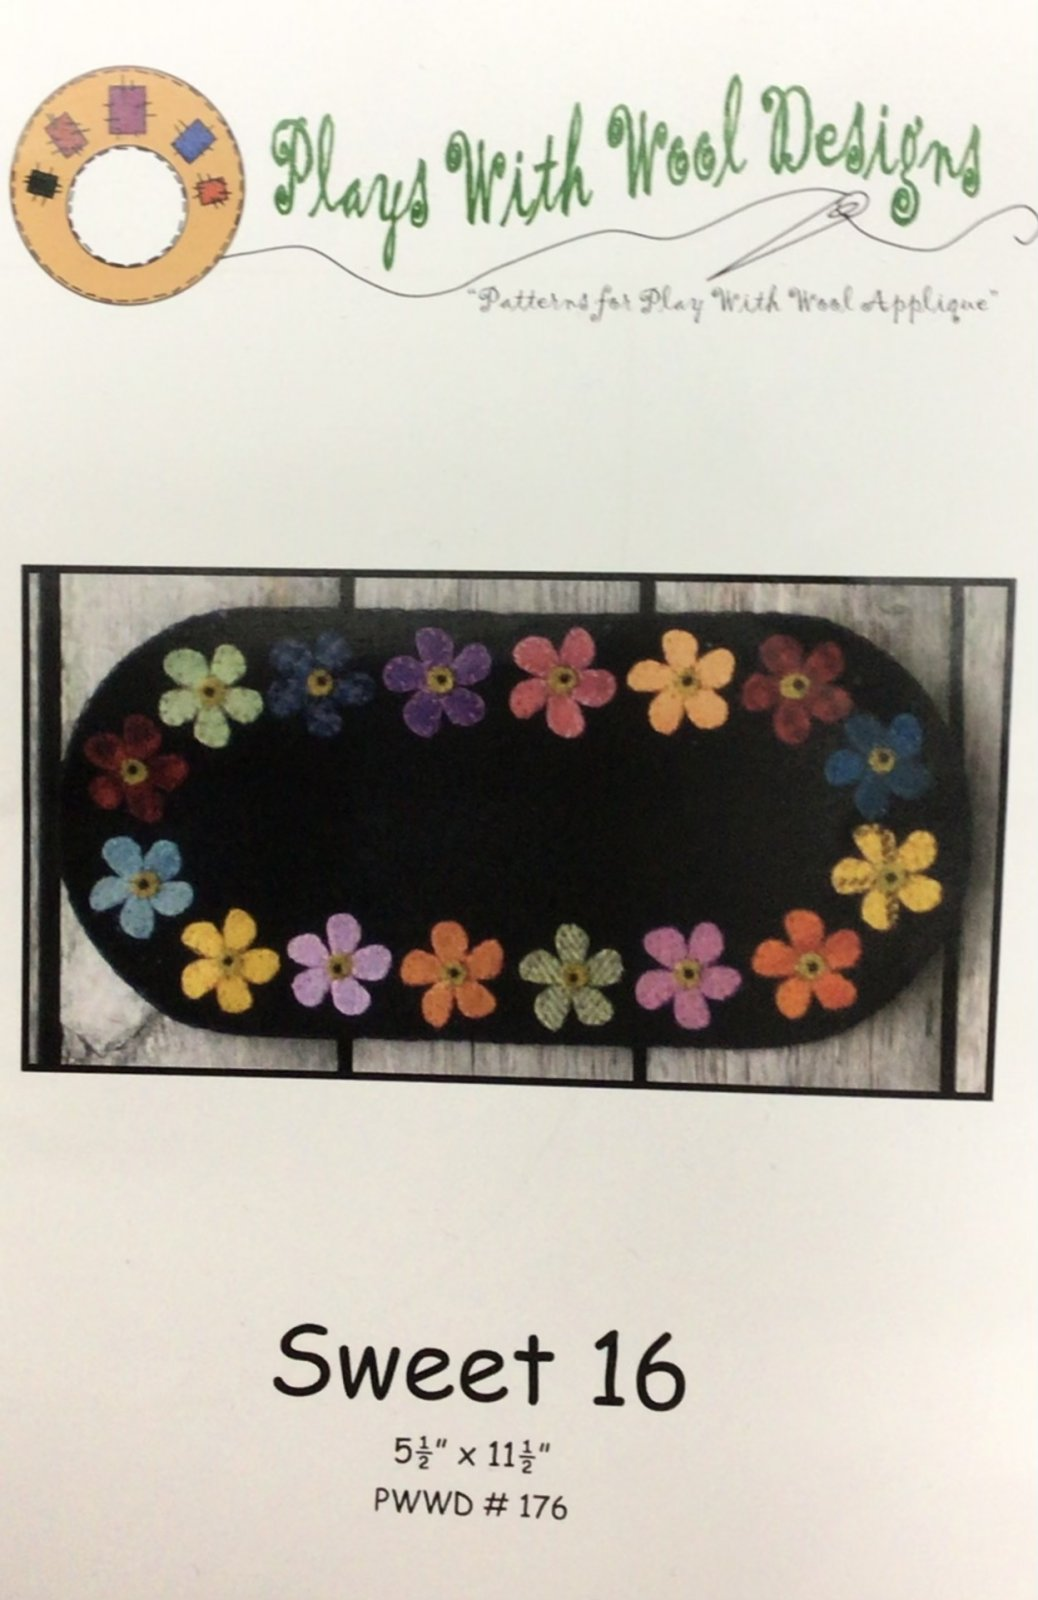 Sweet 16 Small oval flower candle mat